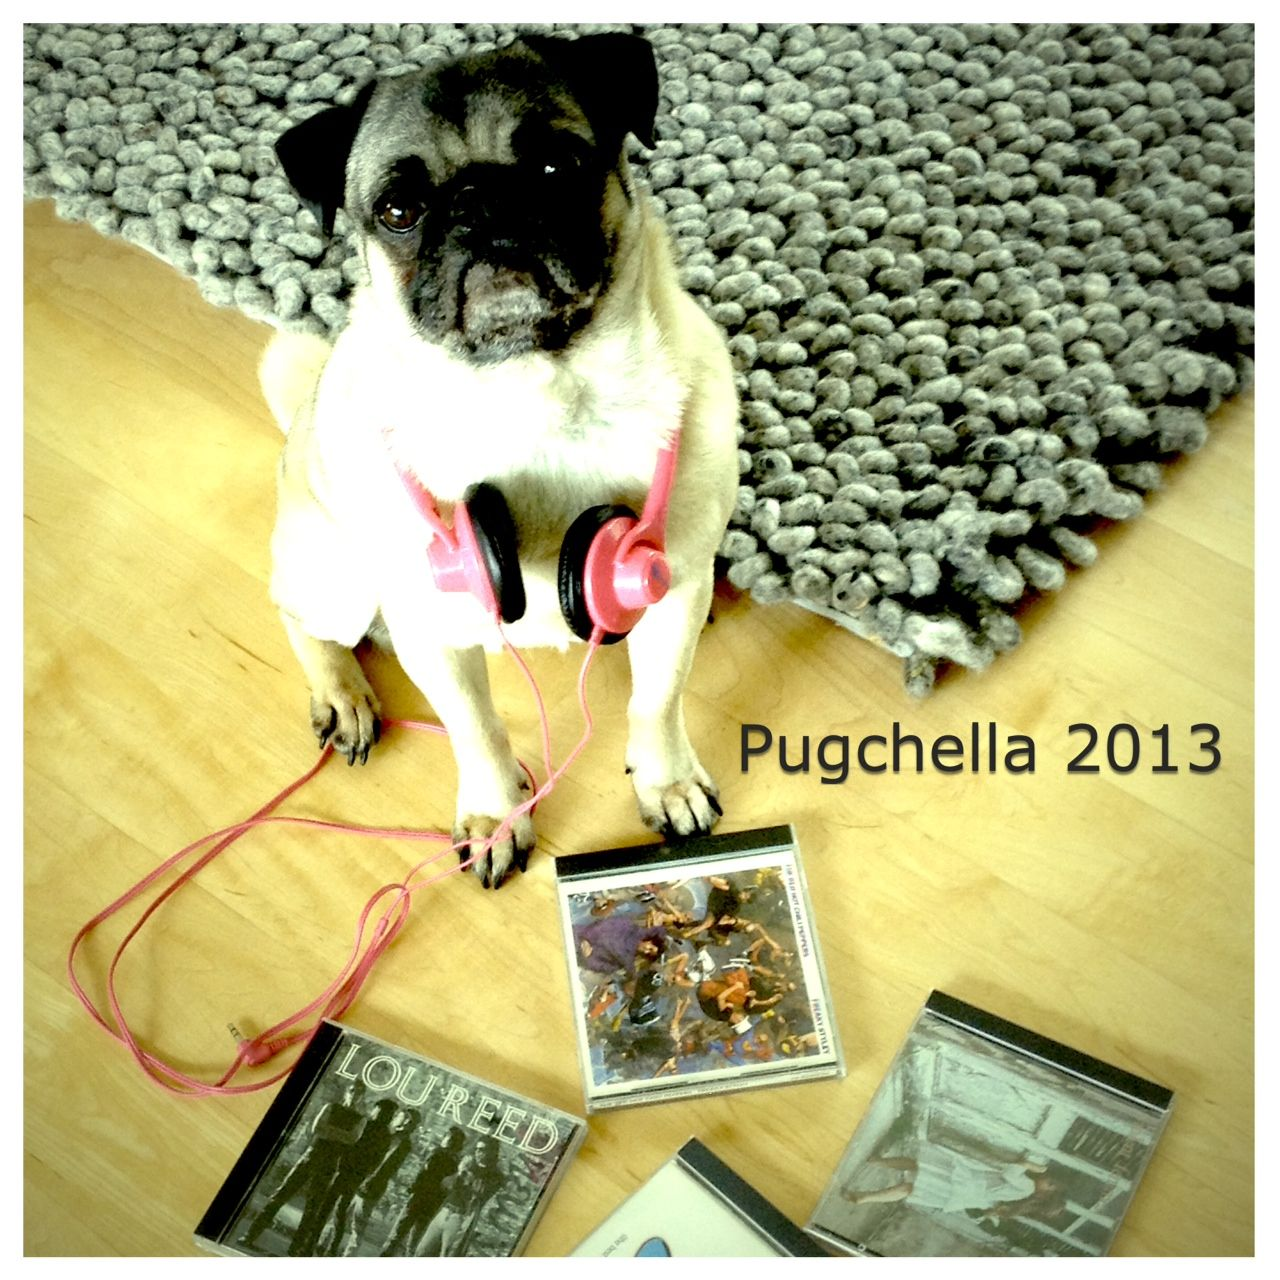 Pugchella Lou Reed Is Still On The Bill Coachella Pugs Pug Rescue Cute Animals